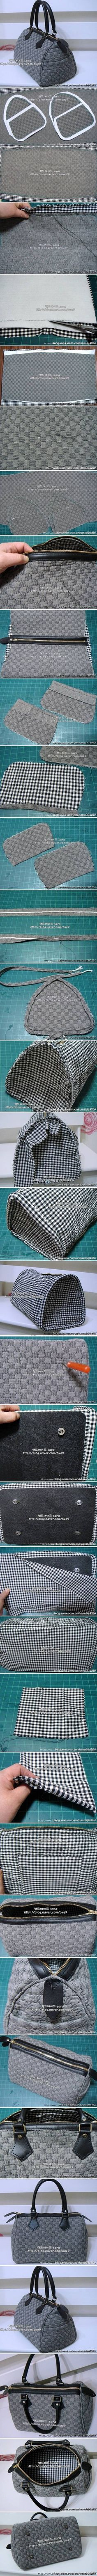 DIY Nice Fashionable Handbag Pictures, Photos, and Images for Facebook, Tumblr, Pinterest, and Twitter